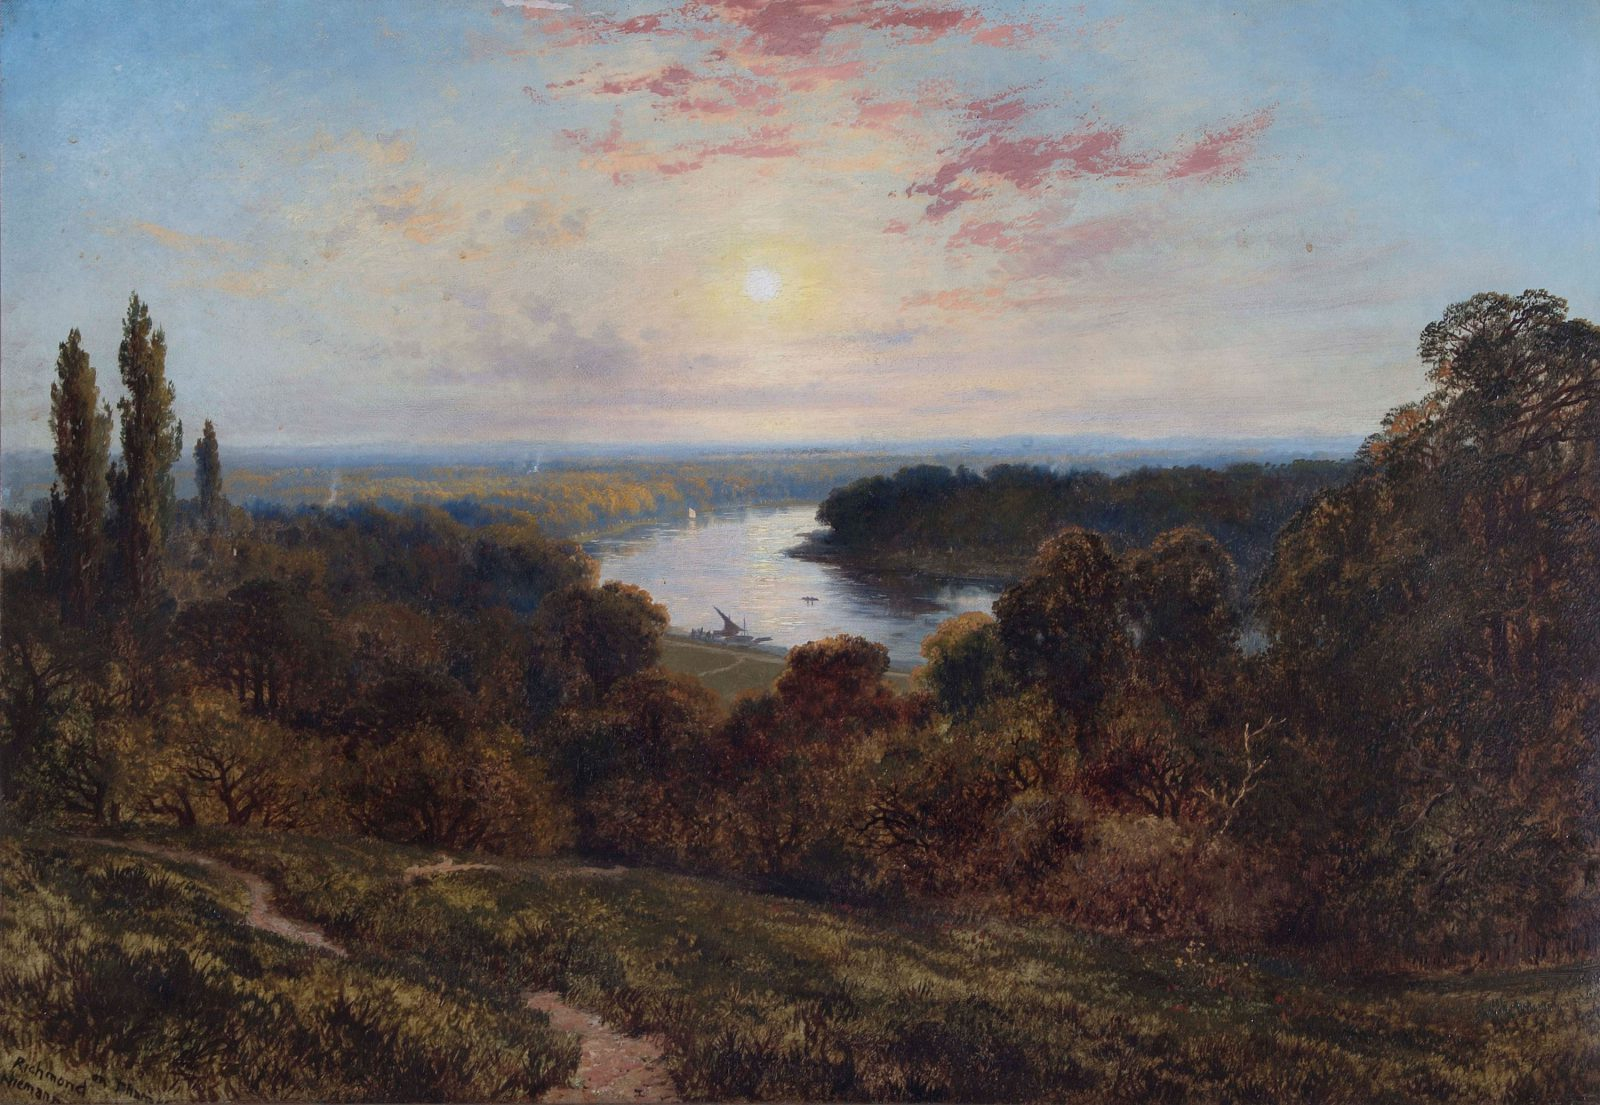 Edmund John Niemann, View from Richmond Hill, 1830, Oil on canvas, Richmond Borough Art Collection